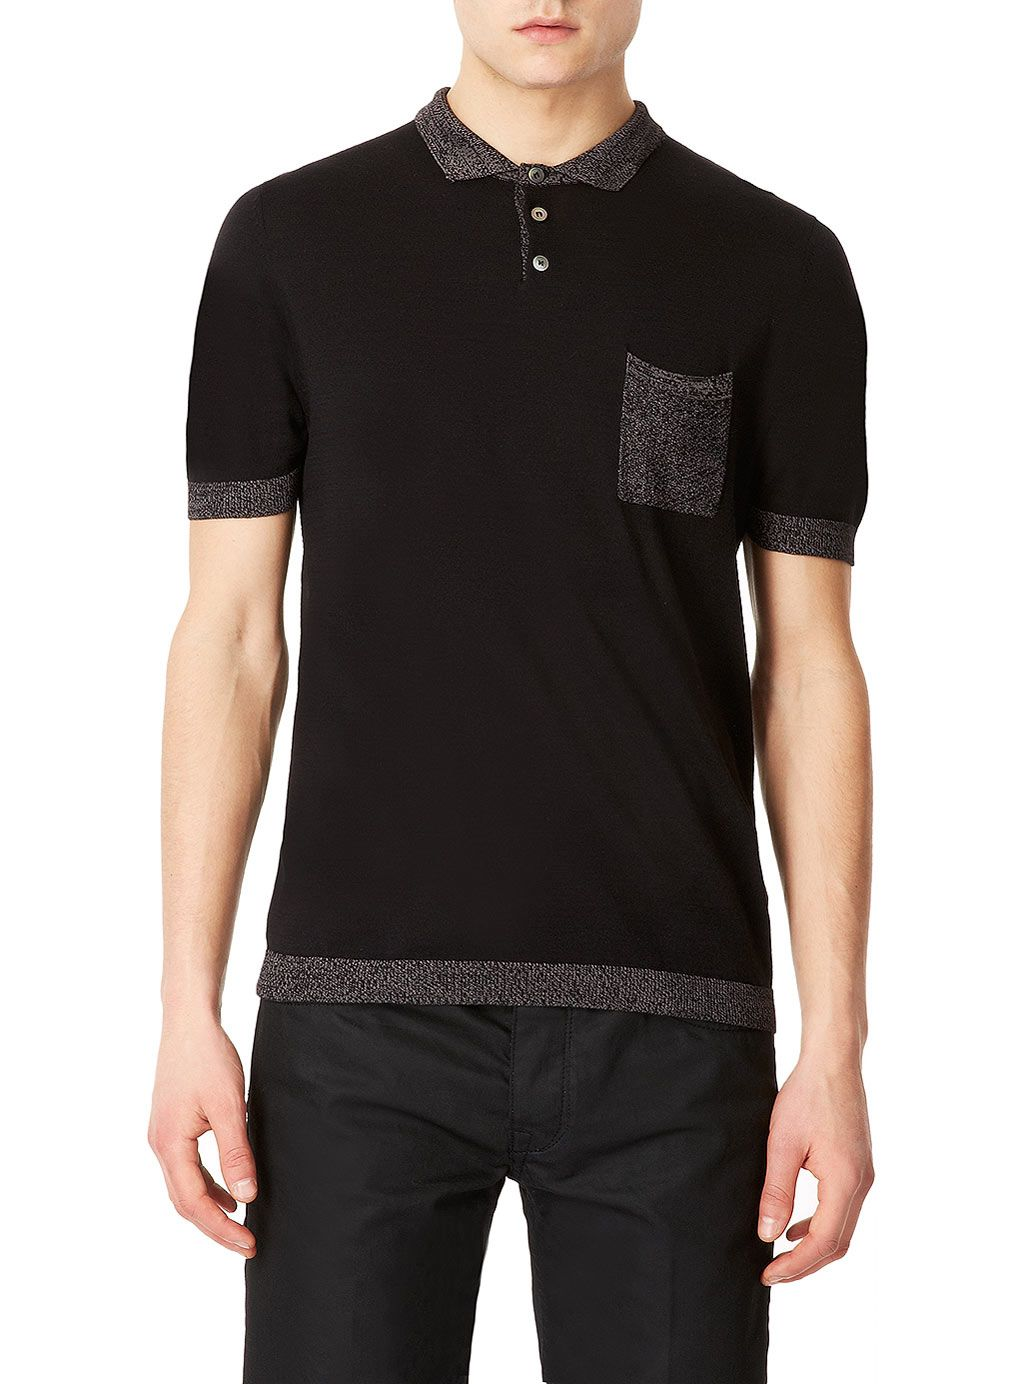 Grey Knitted Short Sleeve Polo Shirt, TopMan Lux Collection